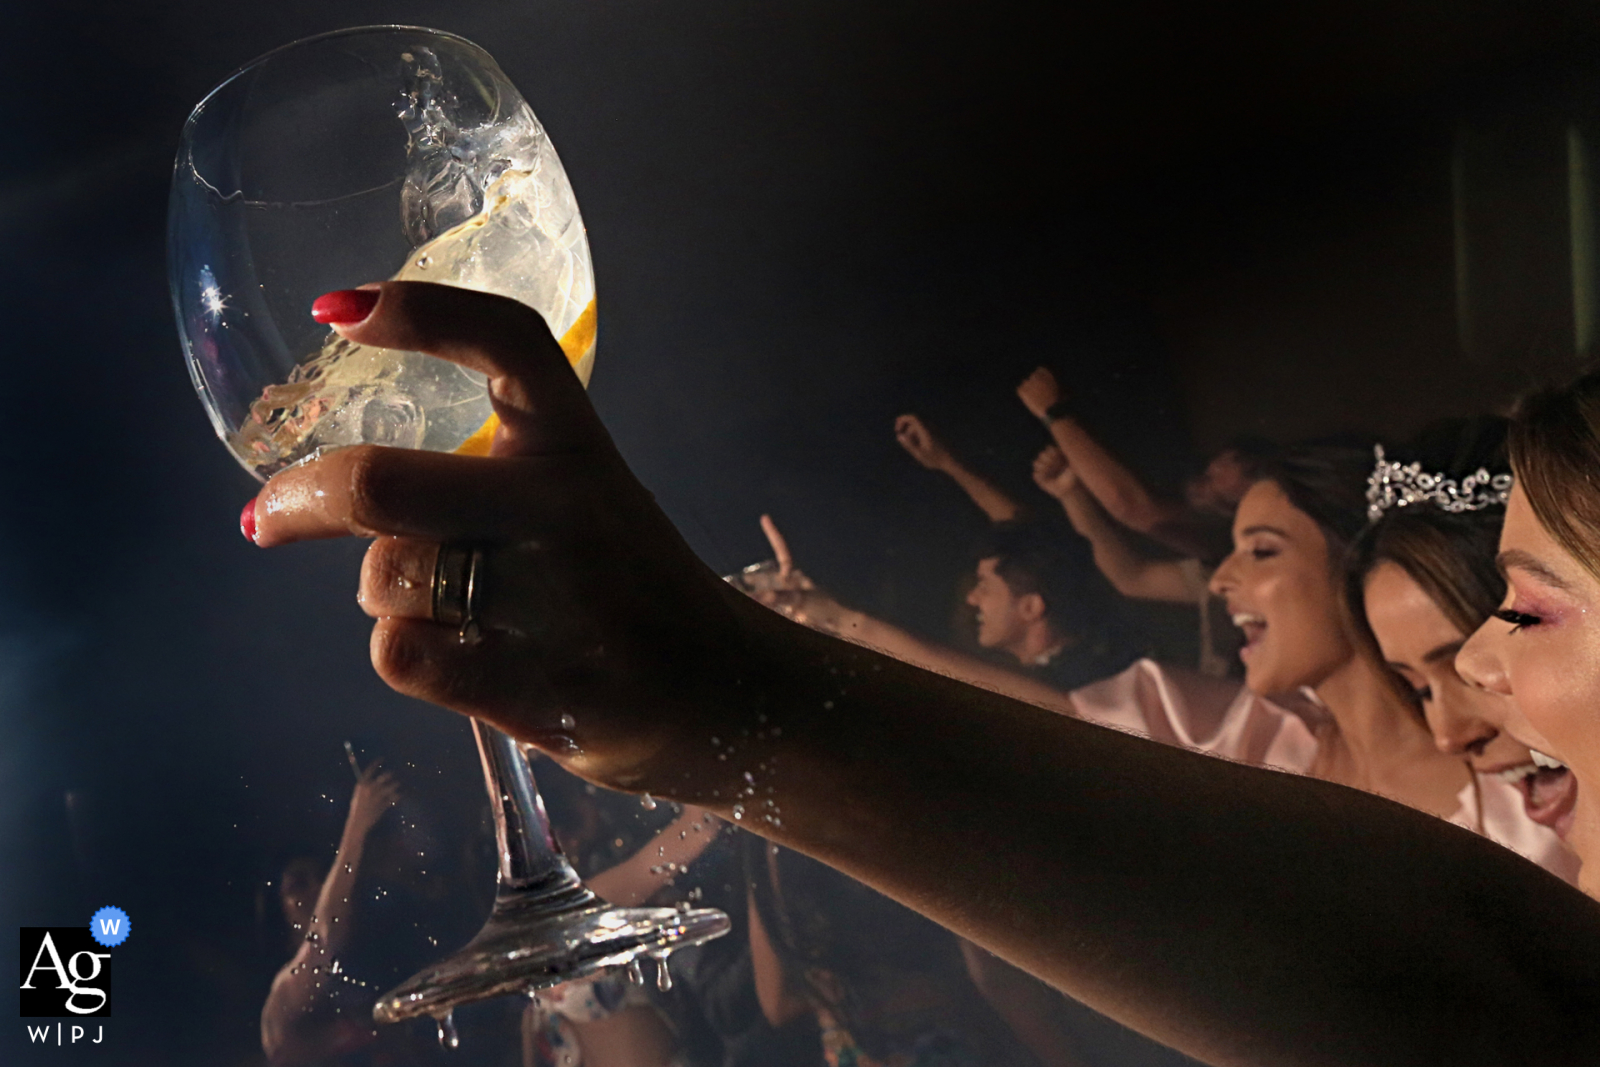 Artistic detail of a glass during a toast at the Villa Borguese Anápolis in Brazil